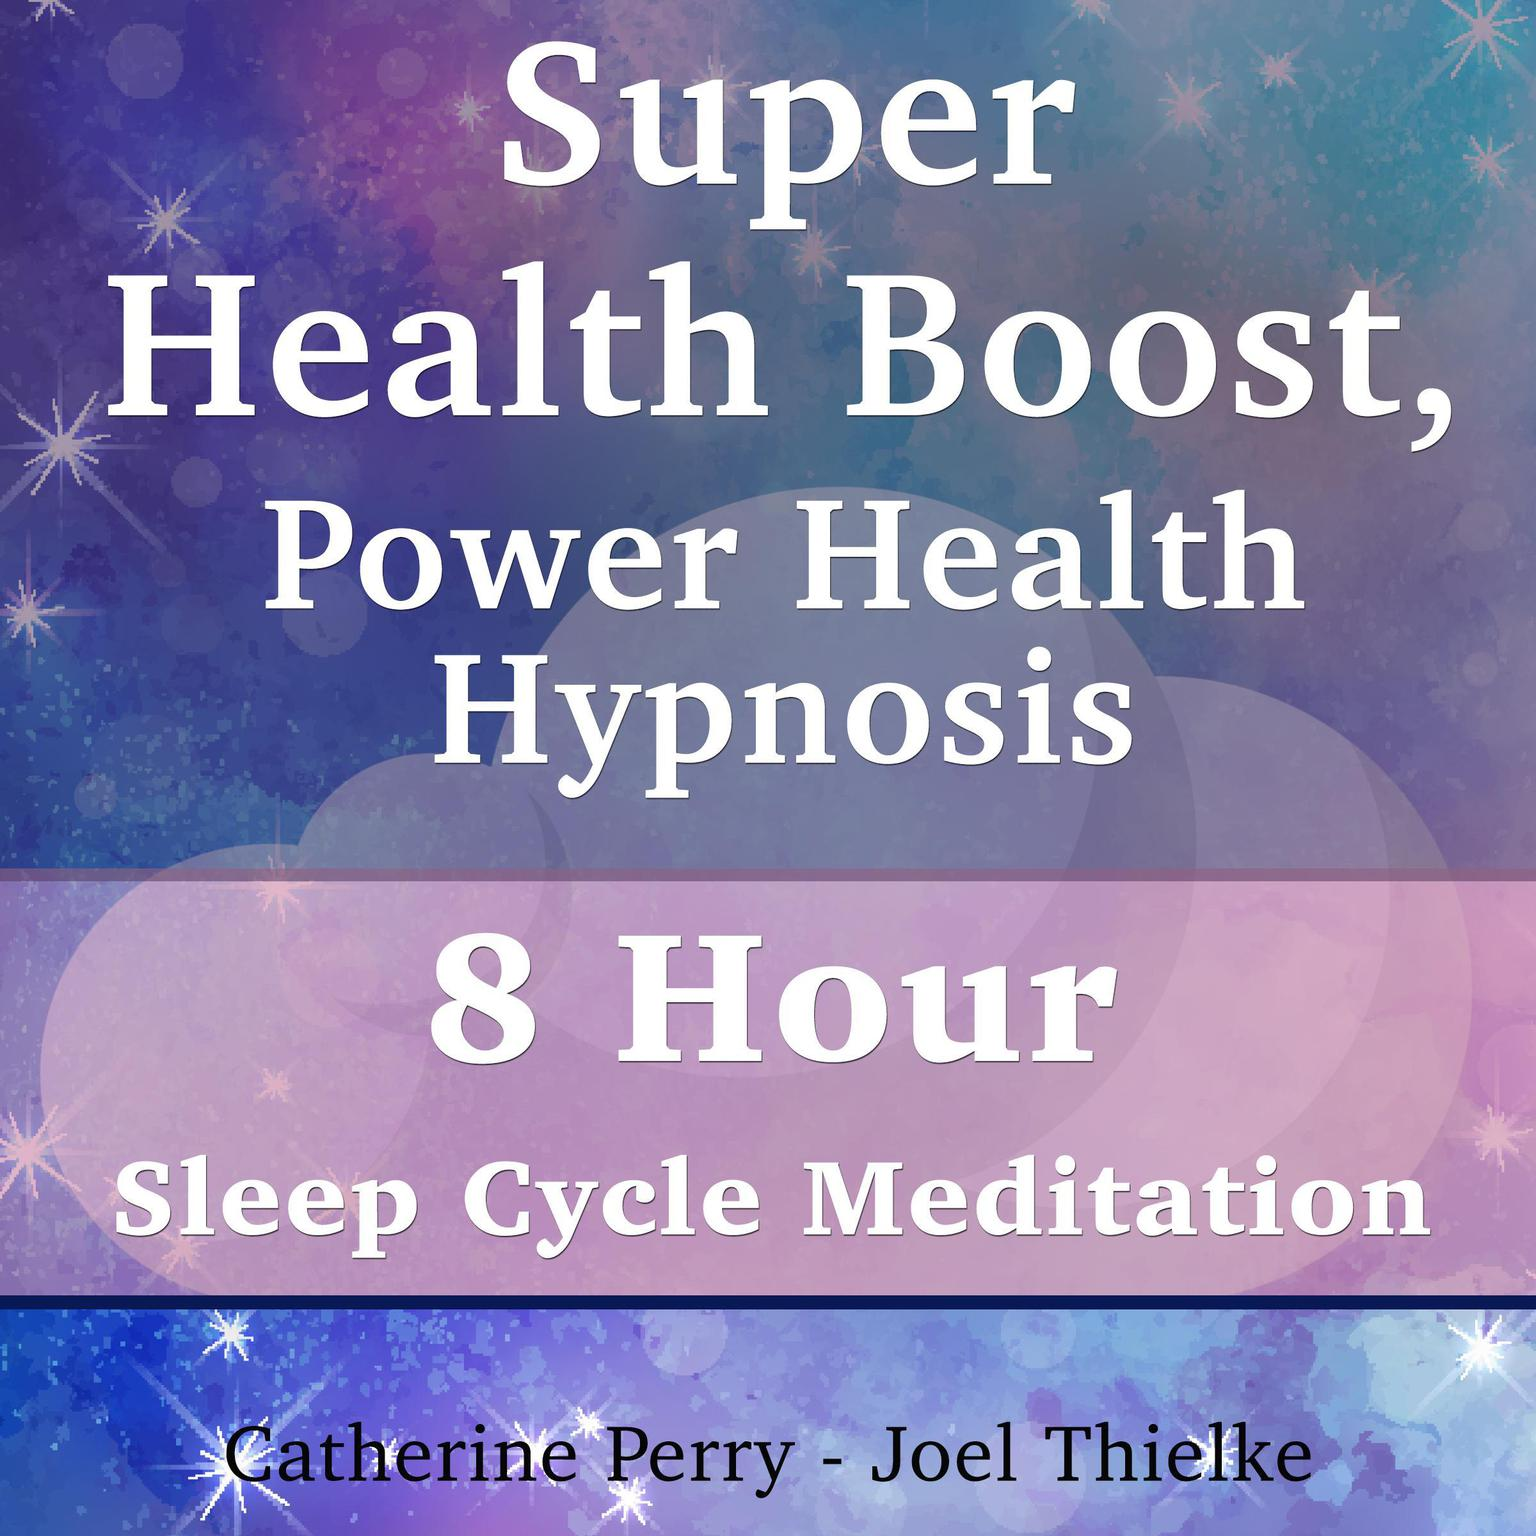 Super Health Boost, Power Health Hypnosis: 8 Hour Sleep Cycle Meditation  Audiobook